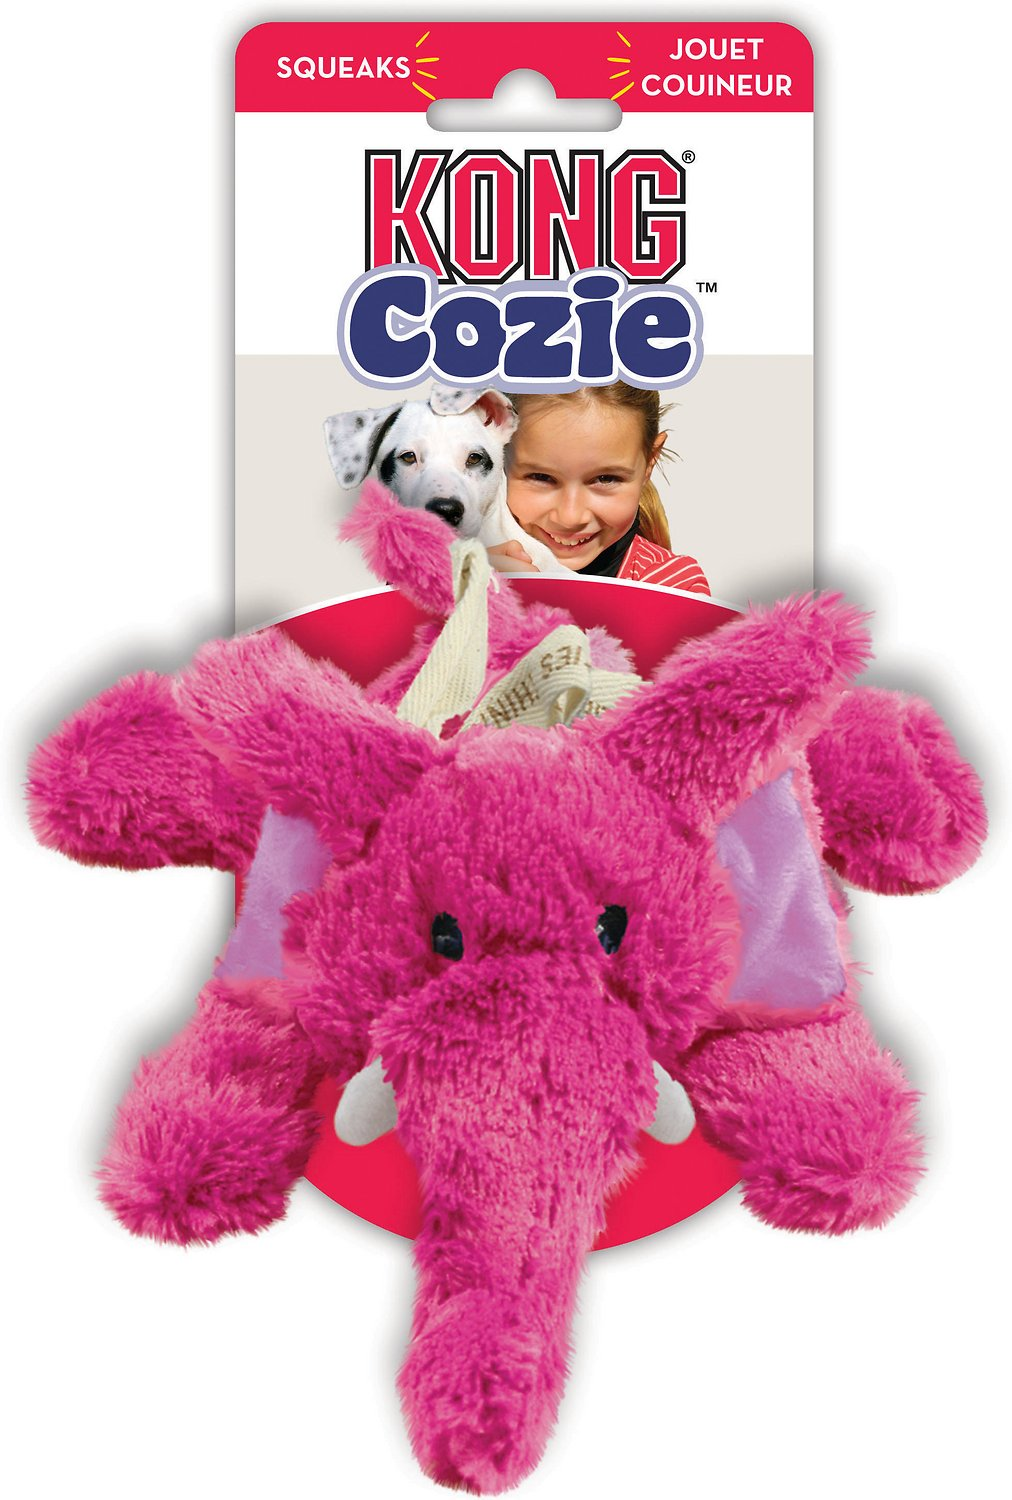 Kong Cozie Elmer Elephant Dog Toy Medium